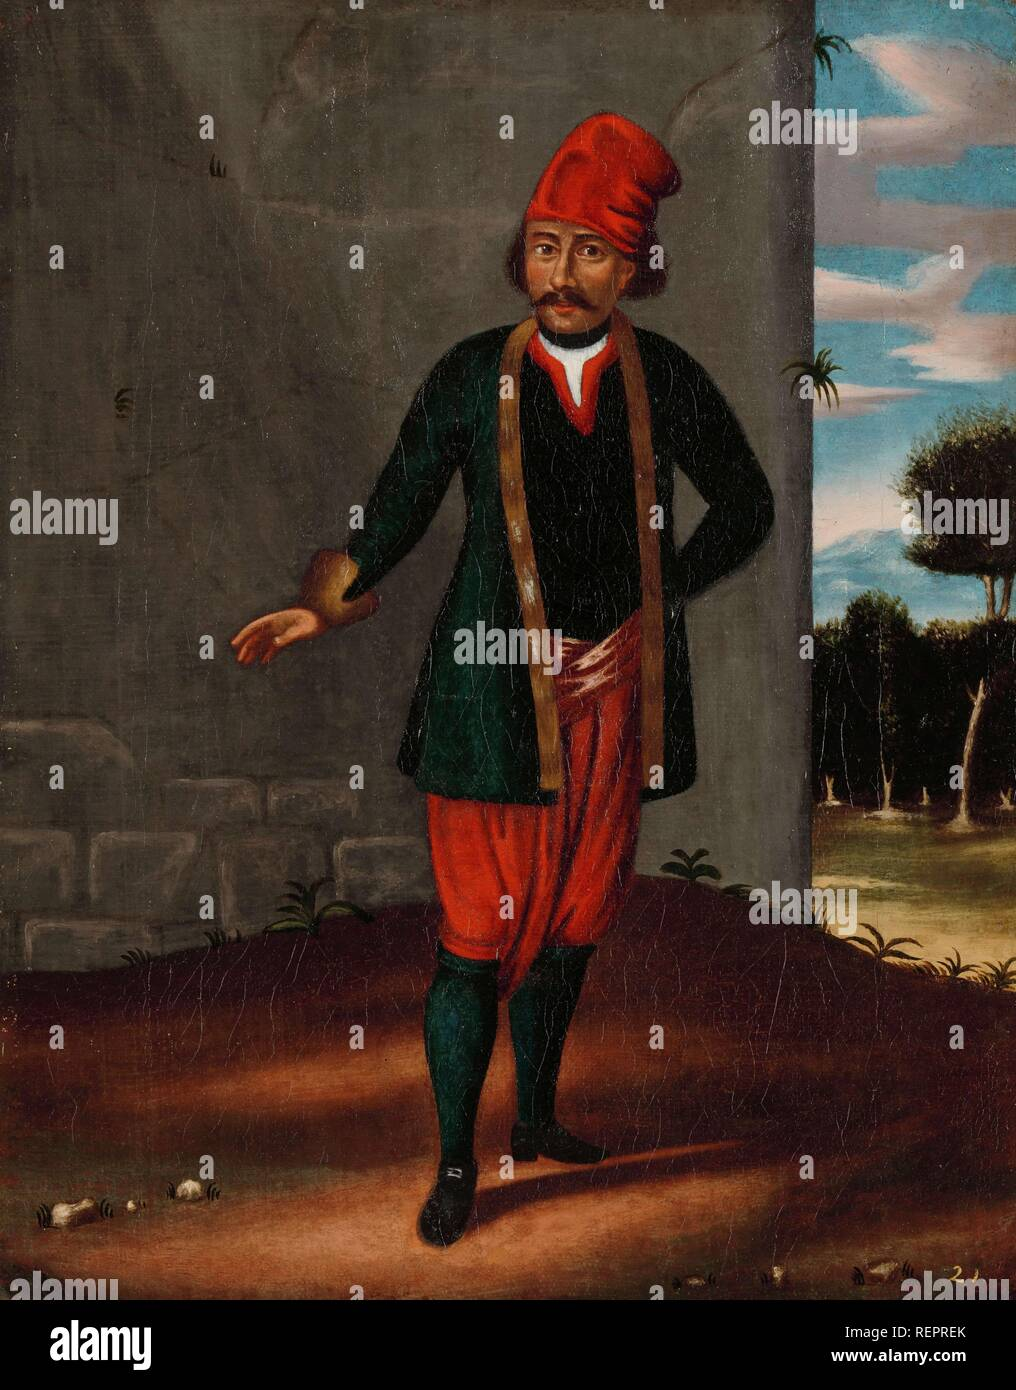 Man from the Island of Tinos. Dating: 1700 - 1737. Place: Istanbul. Measurements: h 39.5 cm × w 31 cm. Museum: Rijksmuseum, Amsterdam. Author: Jean Baptiste Vanmour (workshop of). - Stock Image